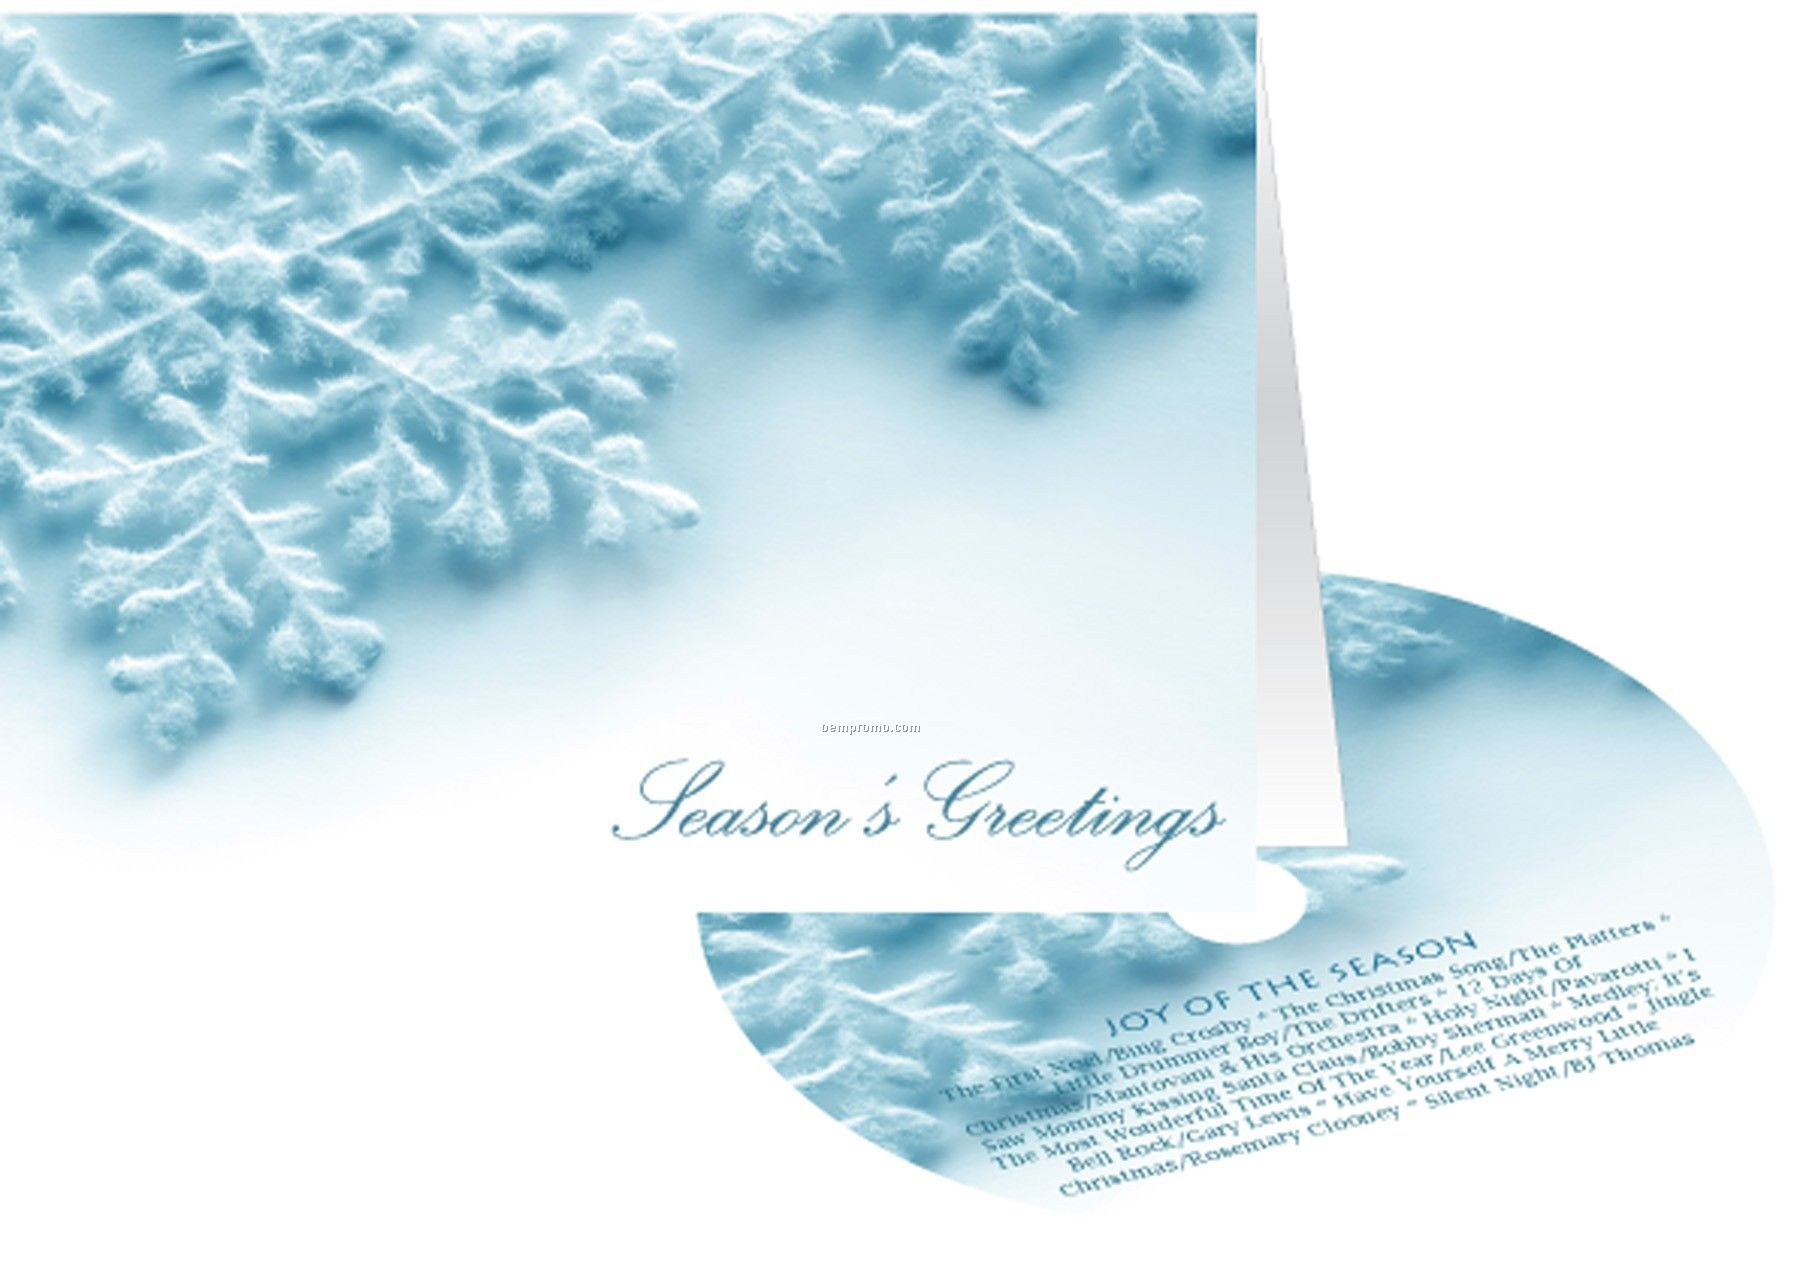 Snowflakes seasons greetings holiday card with matching cdchina snowflakes seasons greetings holiday card with matching cd kristyandbryce Gallery